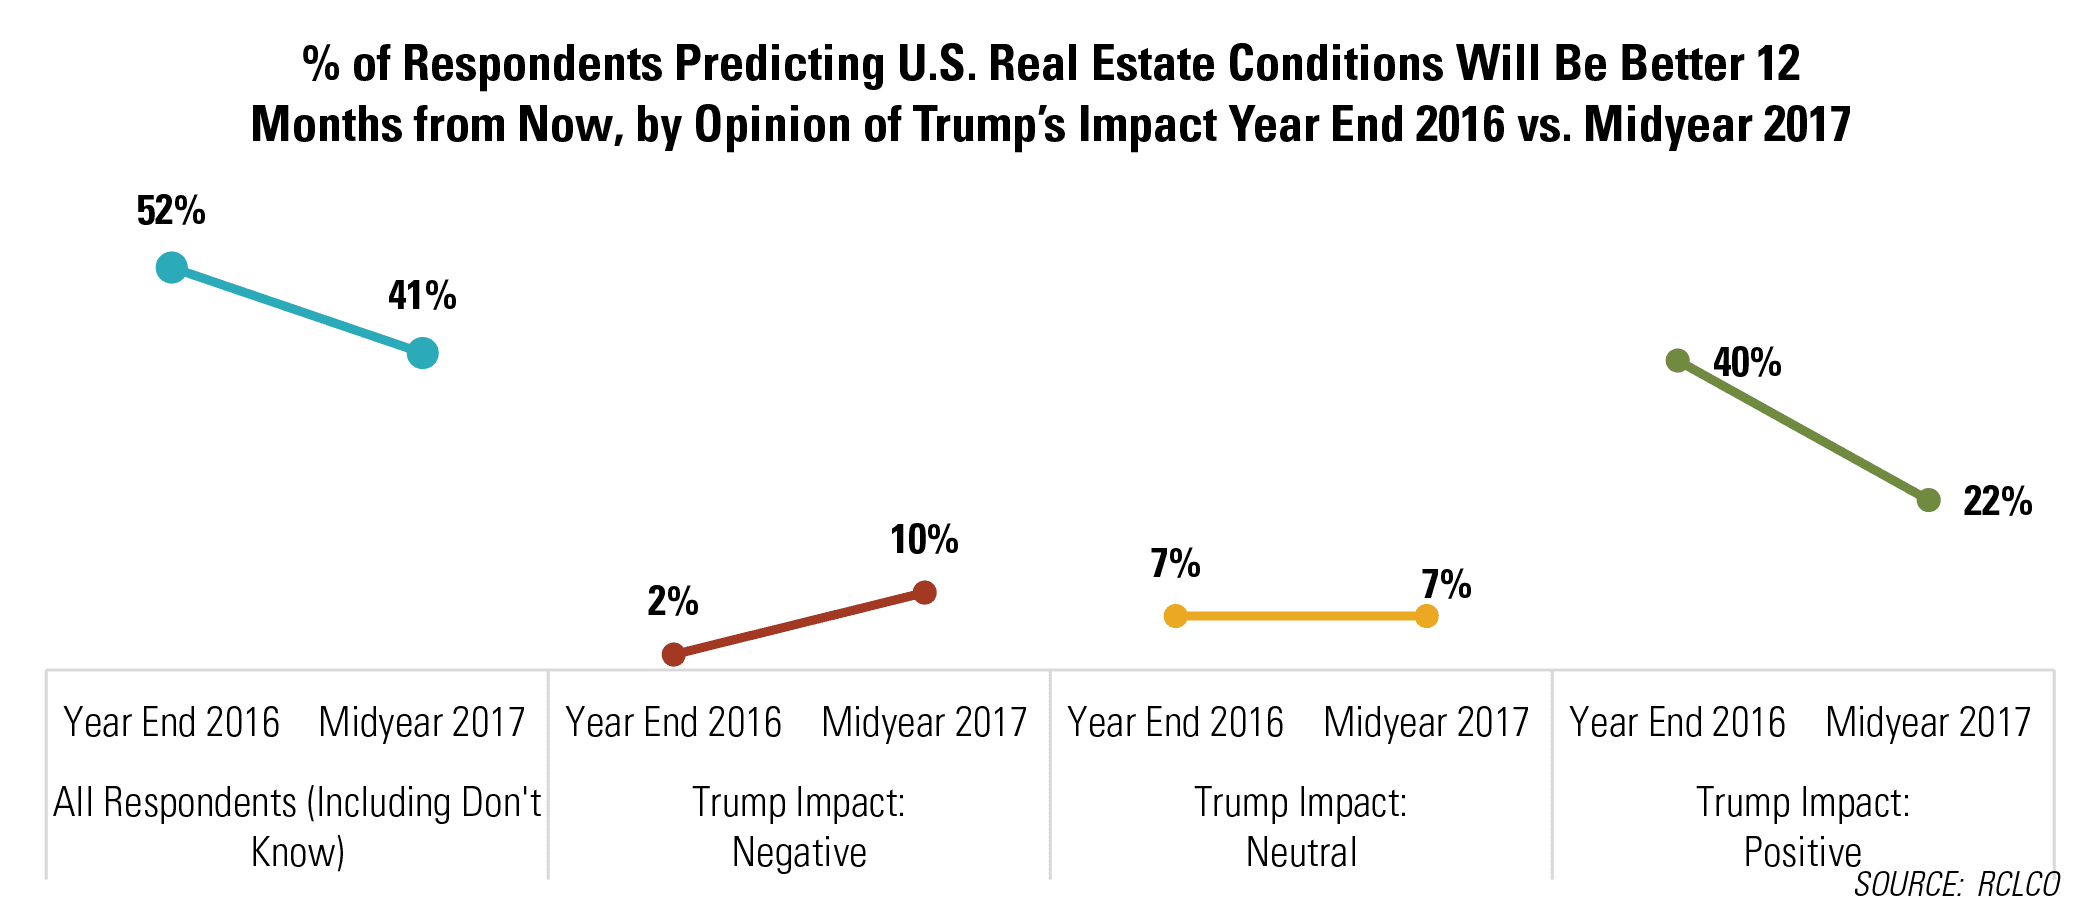 Percent of Respondents Predicting U.S. Real Estate Conditions Will Be Better 12 Months from Now, by Opinion of Trump's Impact Year End 2016 vs. Midyear 2017